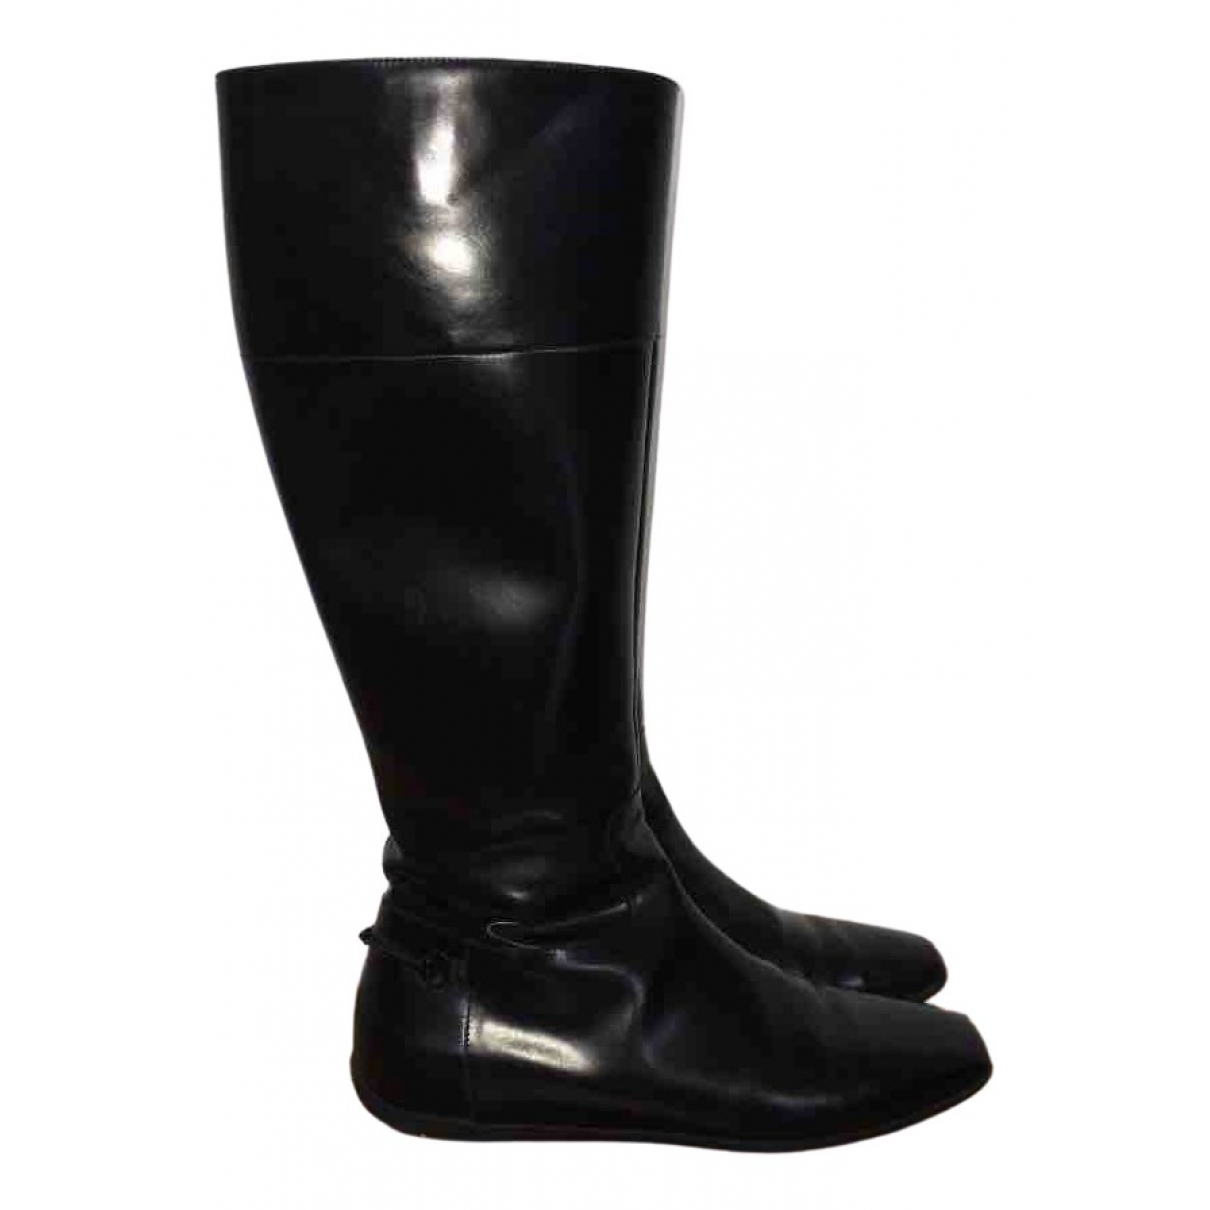 Gucci \N Black Patent leather Boots for Women 36.5 EU